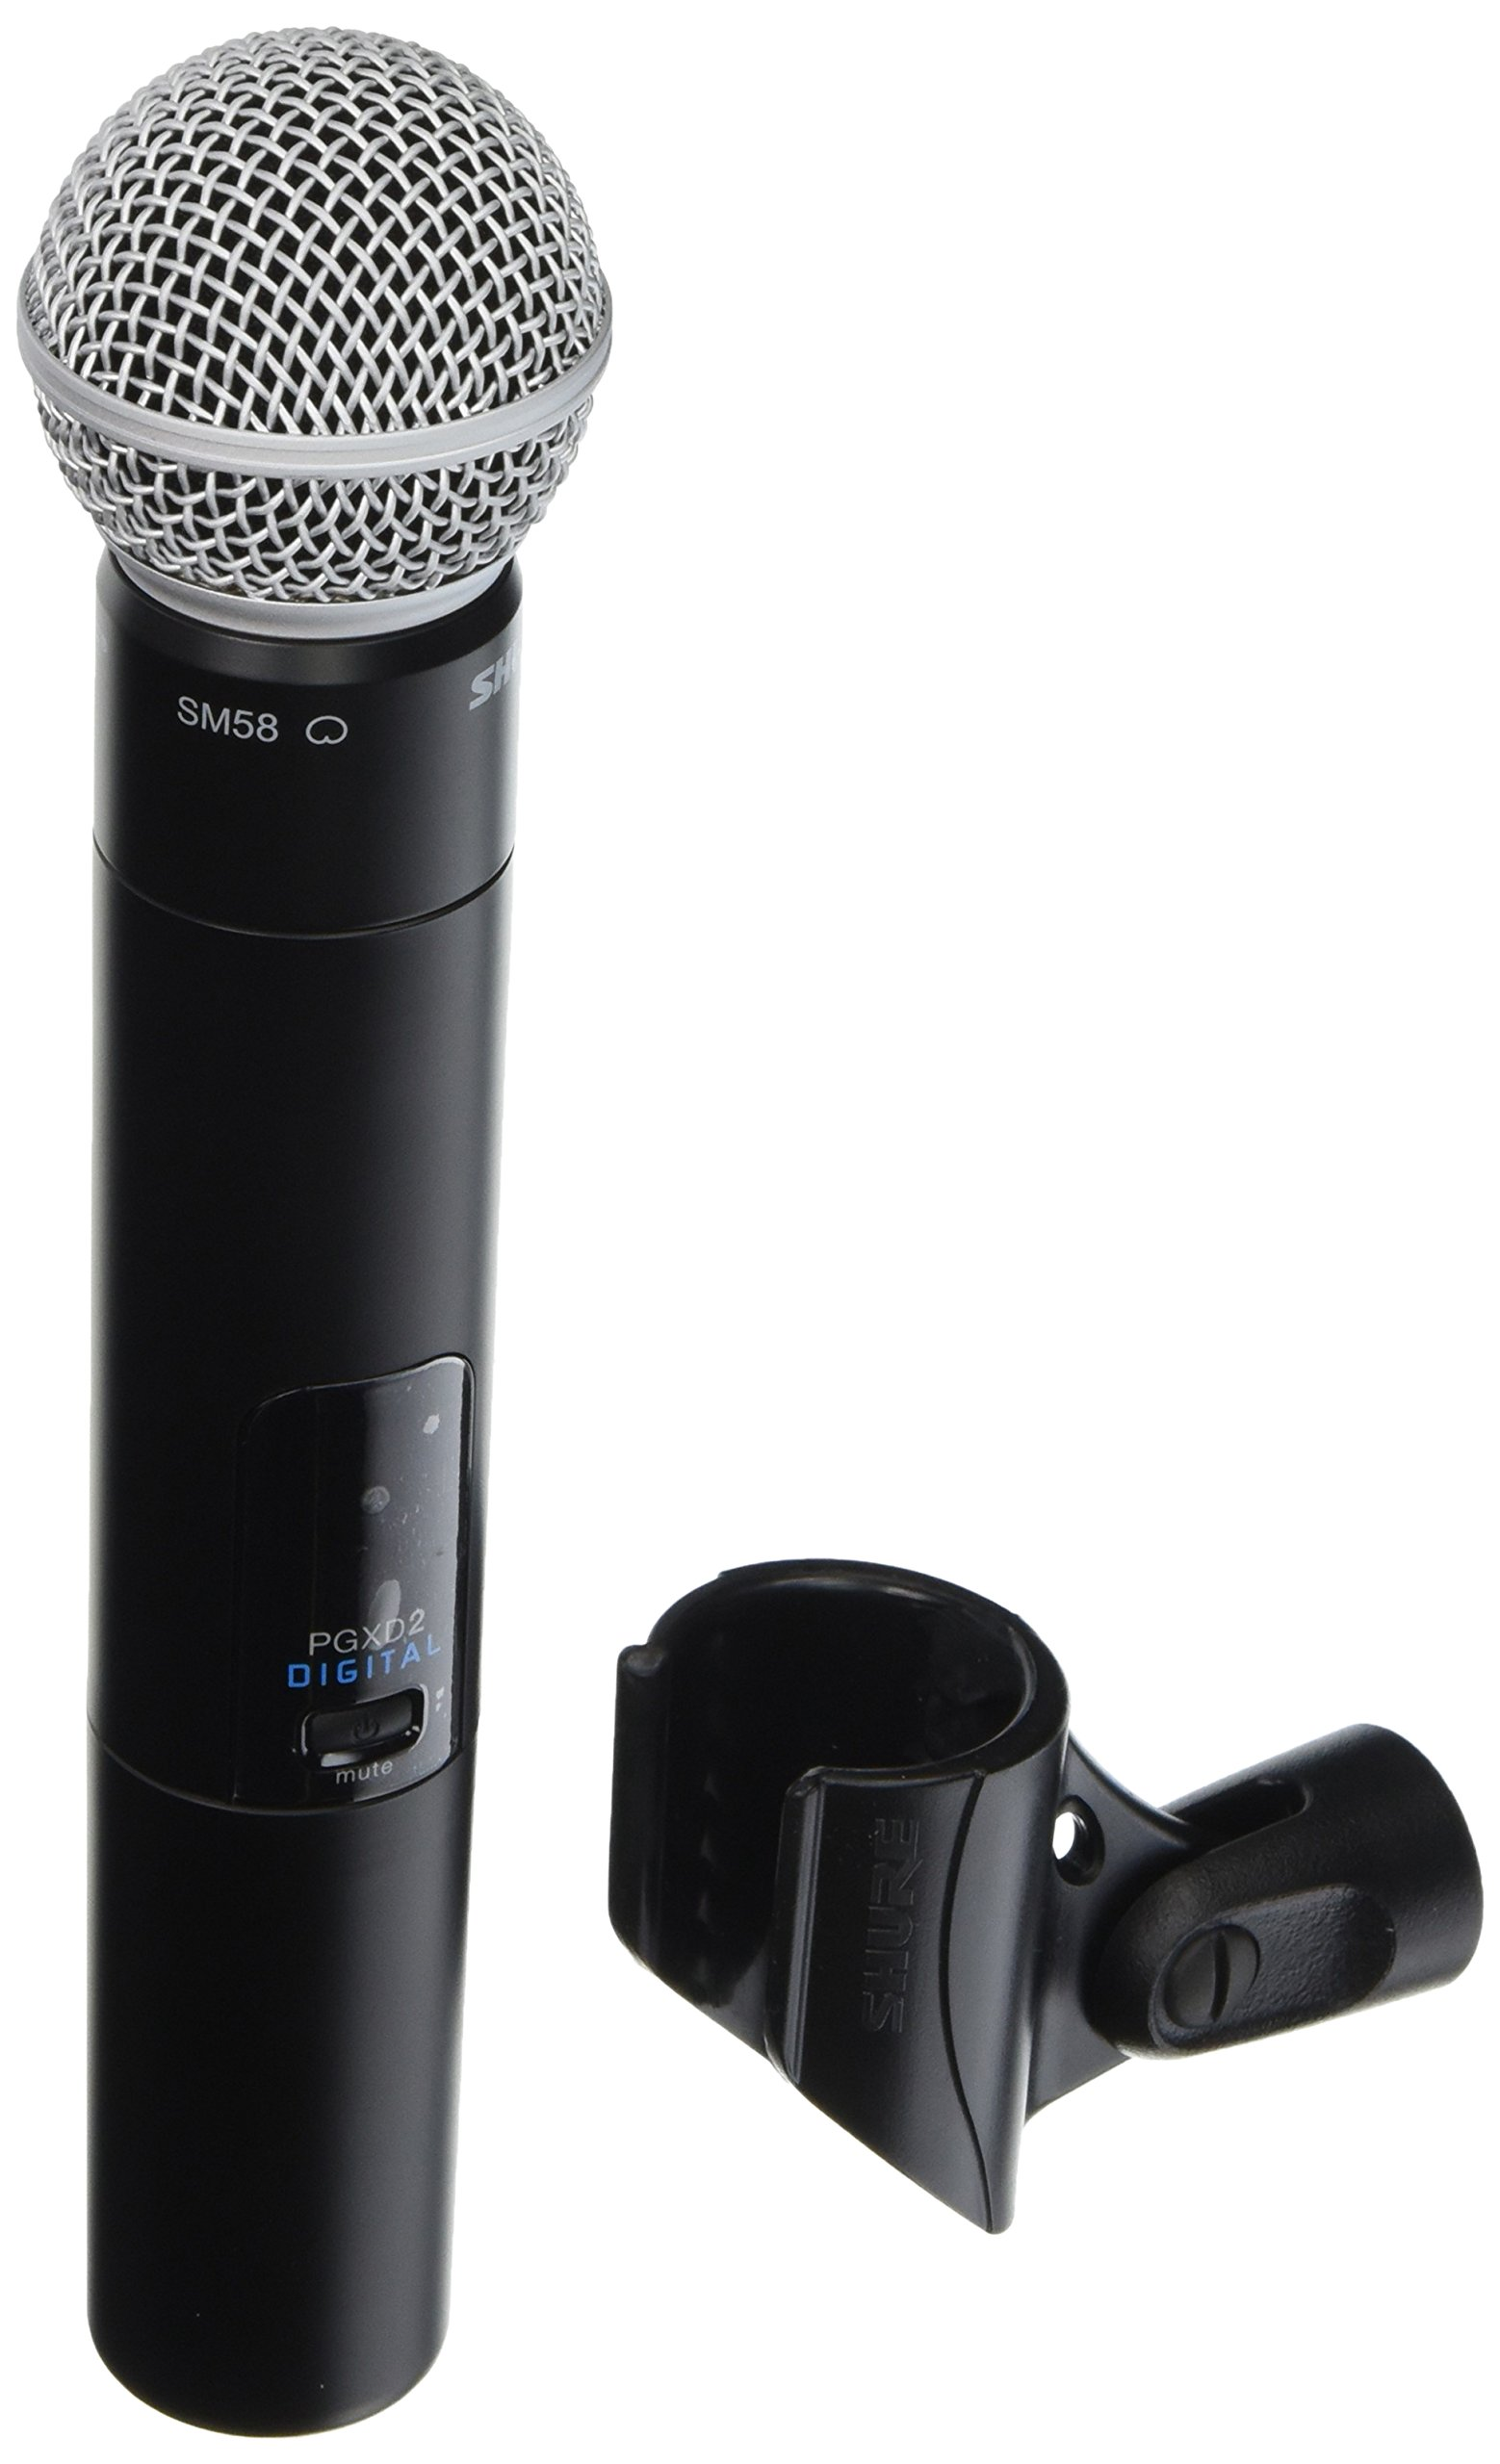 shure pgxd2 sm58 x8 digital handheld wireless transmitter with sm58 microphone techadict. Black Bedroom Furniture Sets. Home Design Ideas